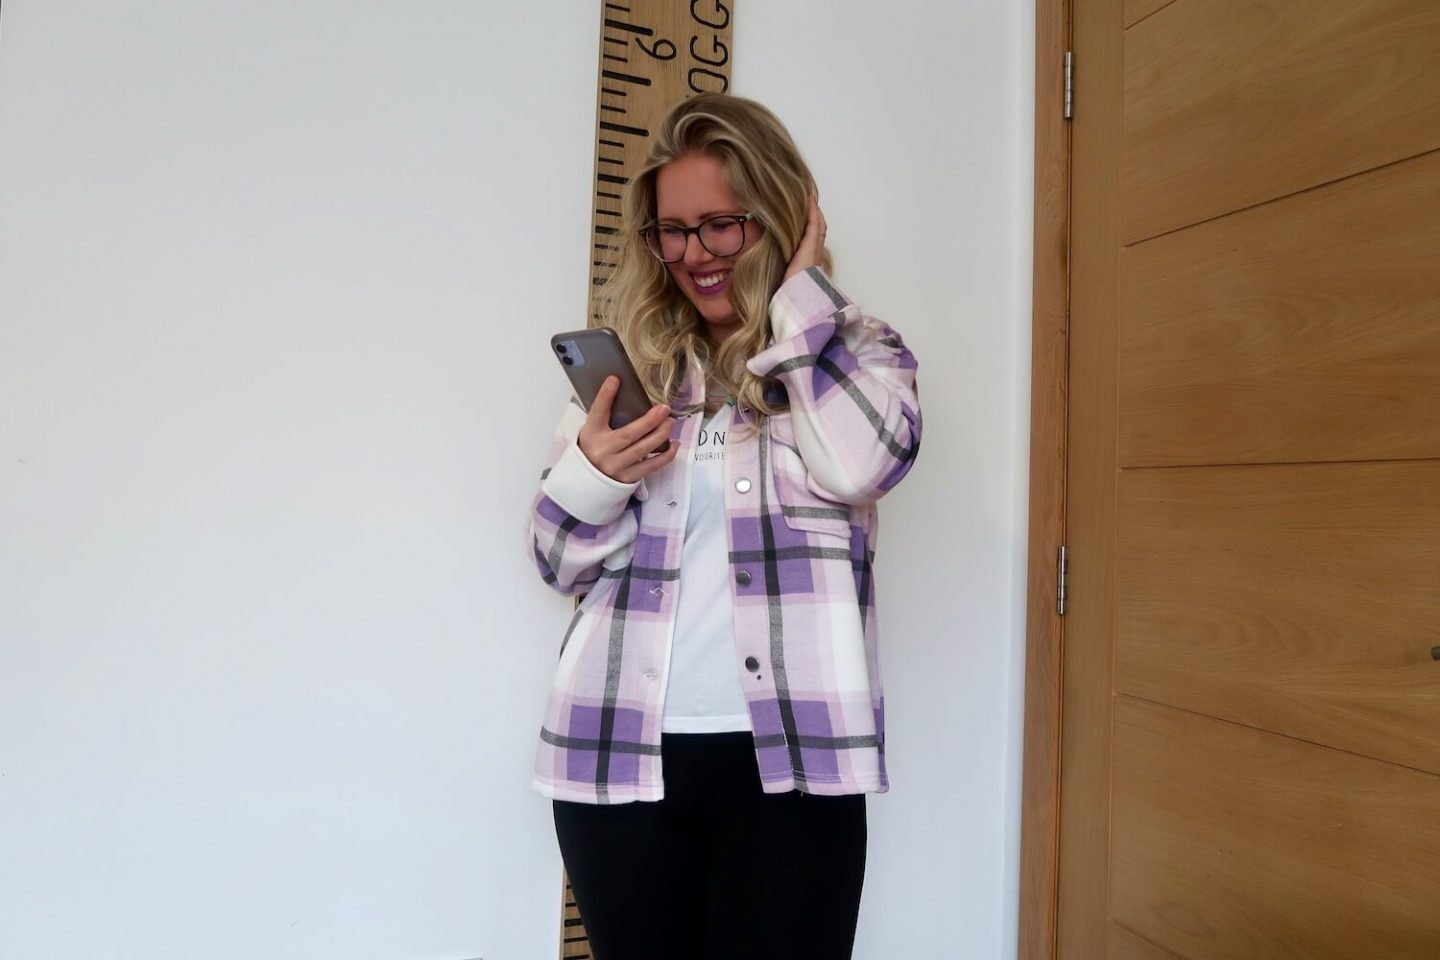 A woman with blonde hair is looking down at her phone and smiling. She is wearing a white and lilac checked shacket and black trousers, with one hand up and touching her her.